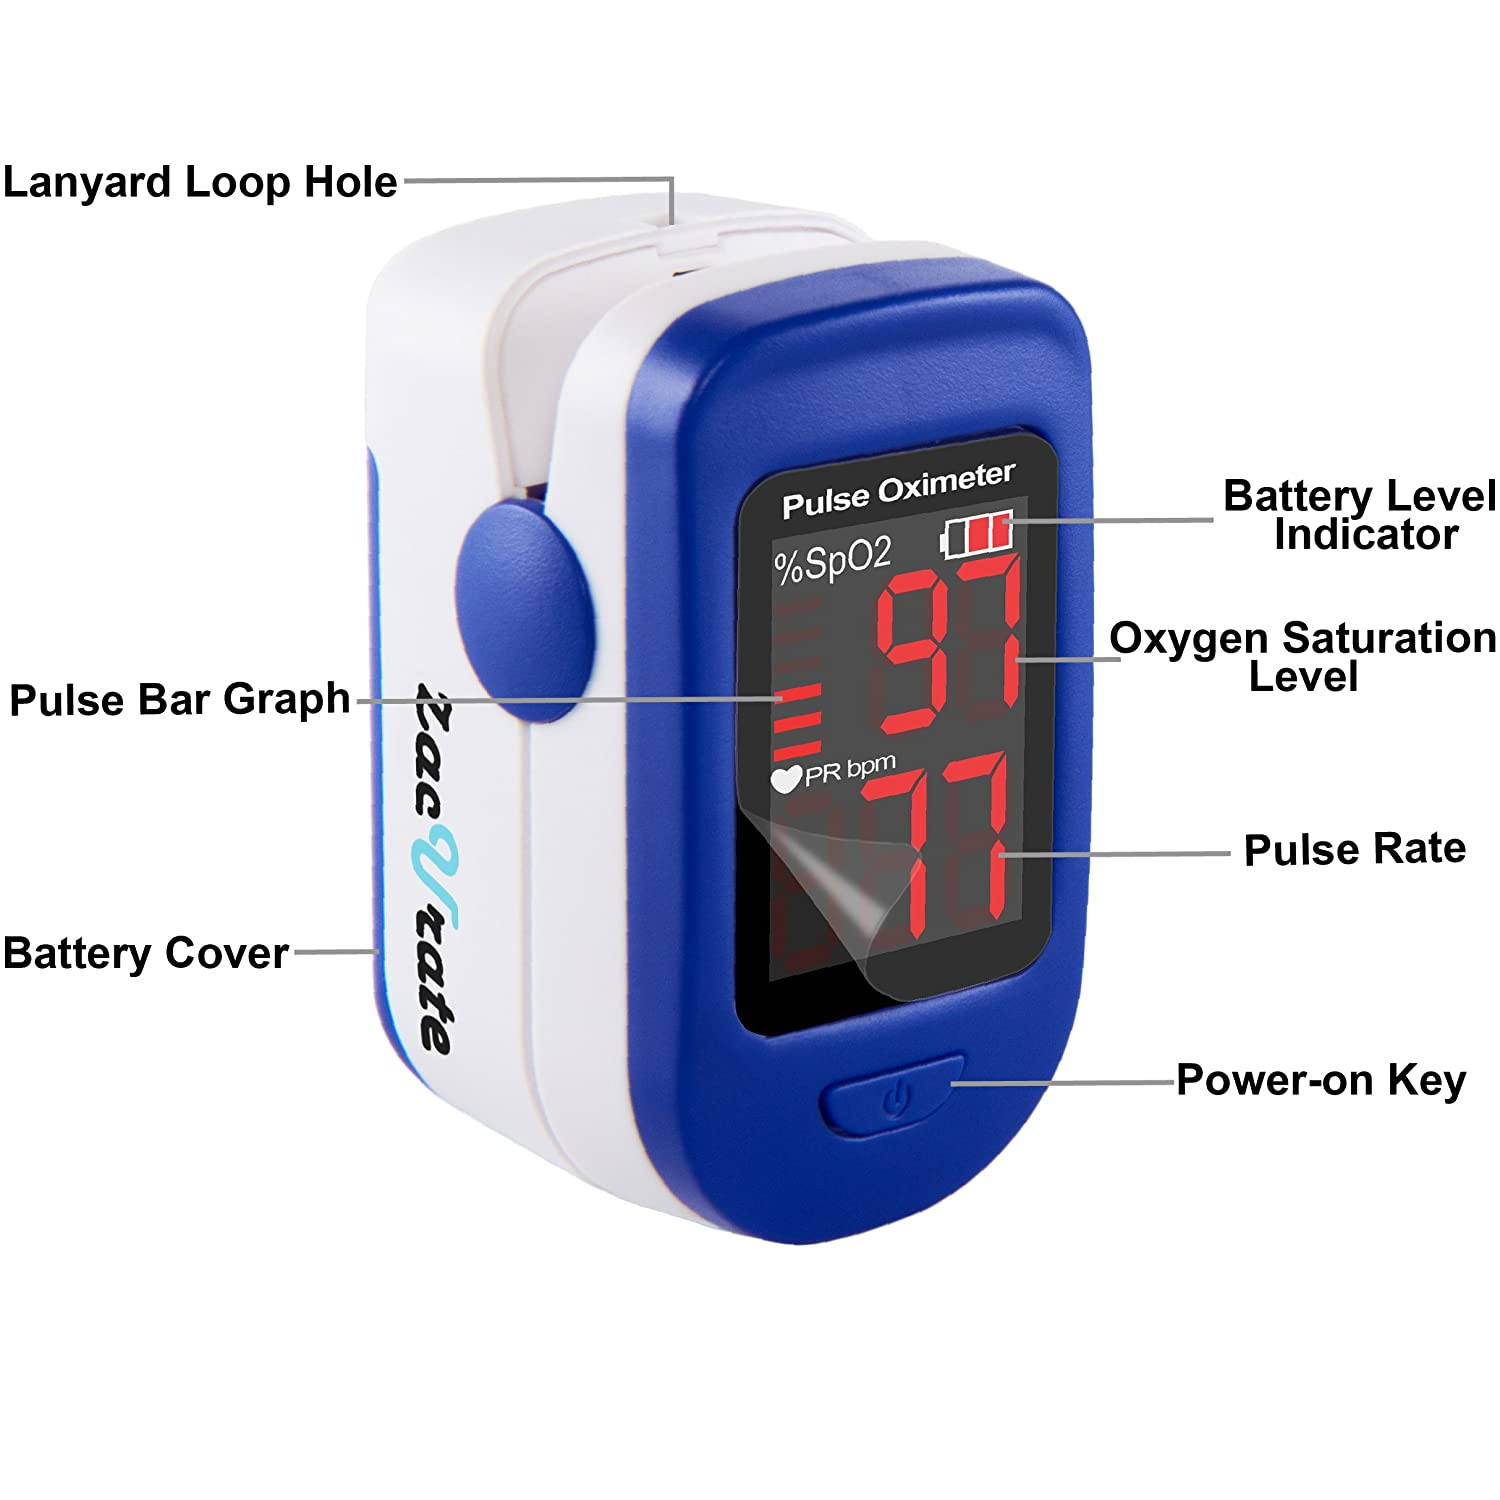 Zacurate 500BL Fingertip Pulse Oximeter Blood Oxygen Saturation Monitor  with Batteries and Lanyard